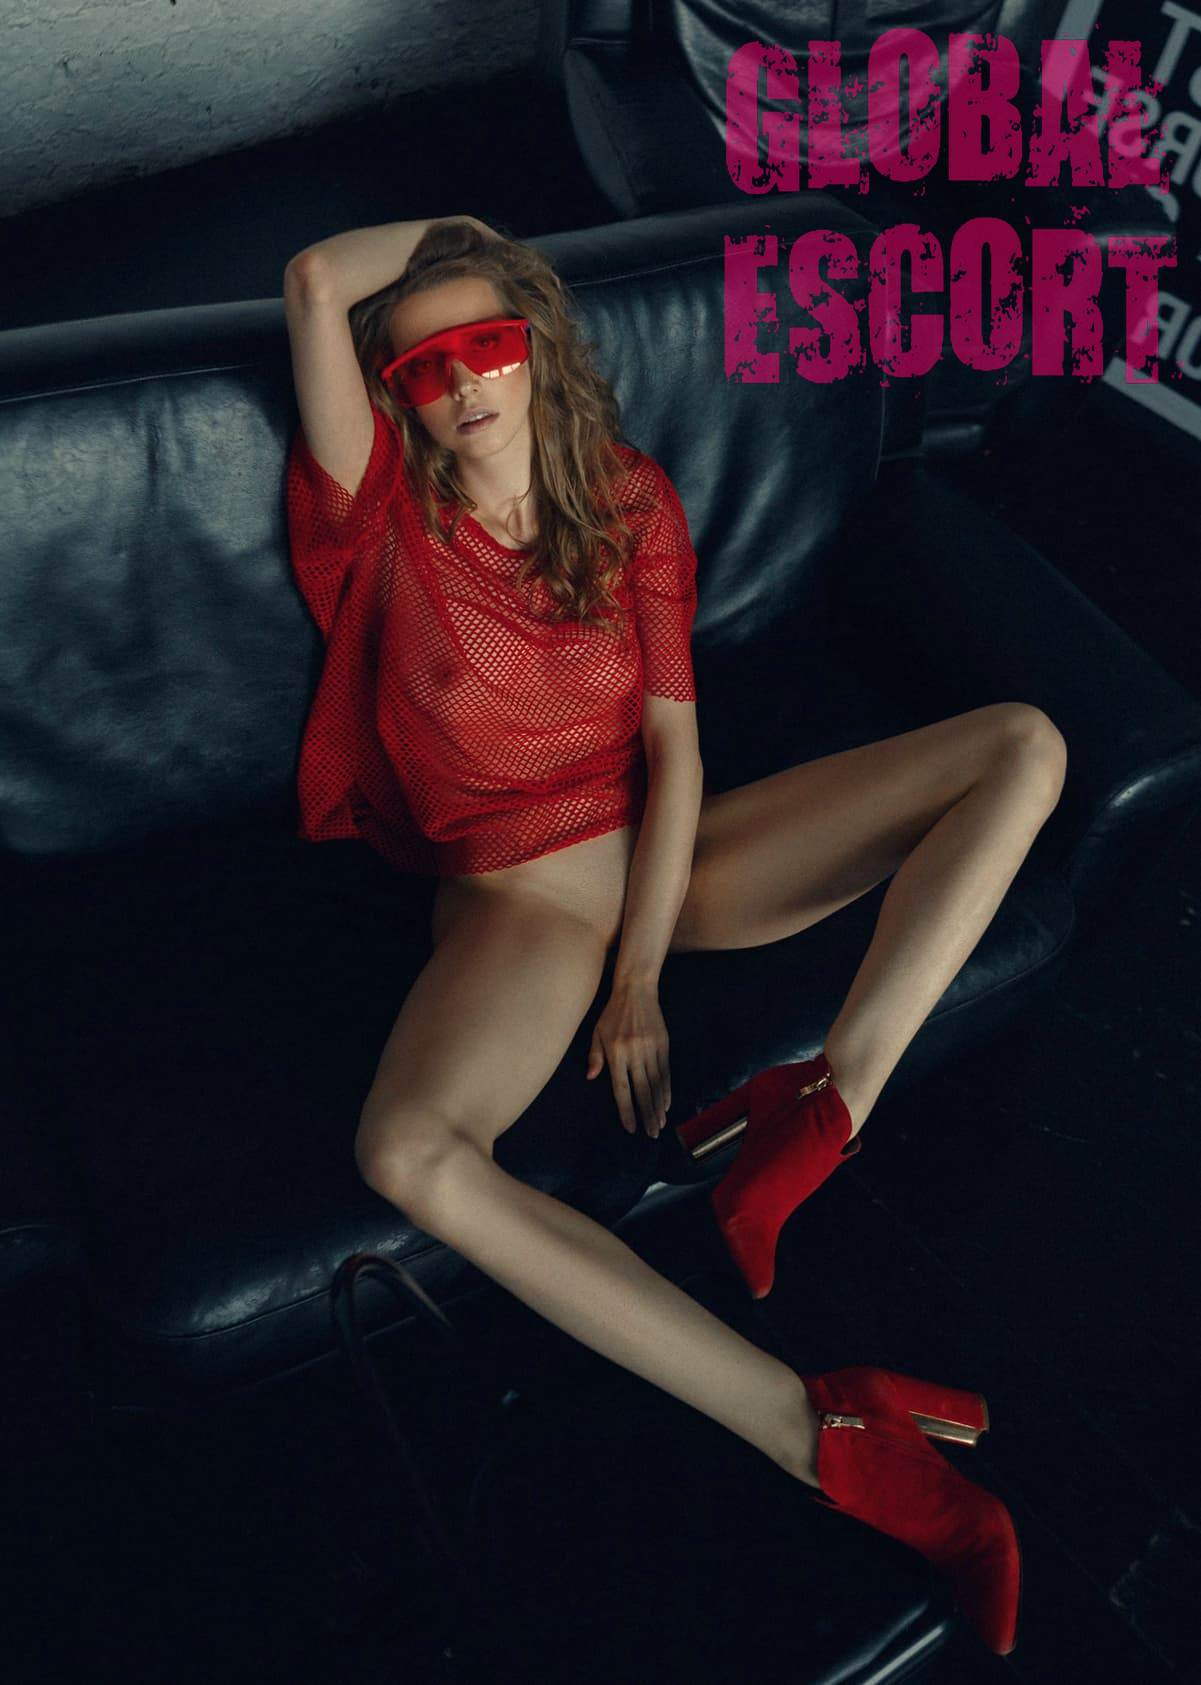 naked sexy escort Model Ekaterina in a transparent red sweater and red glasses